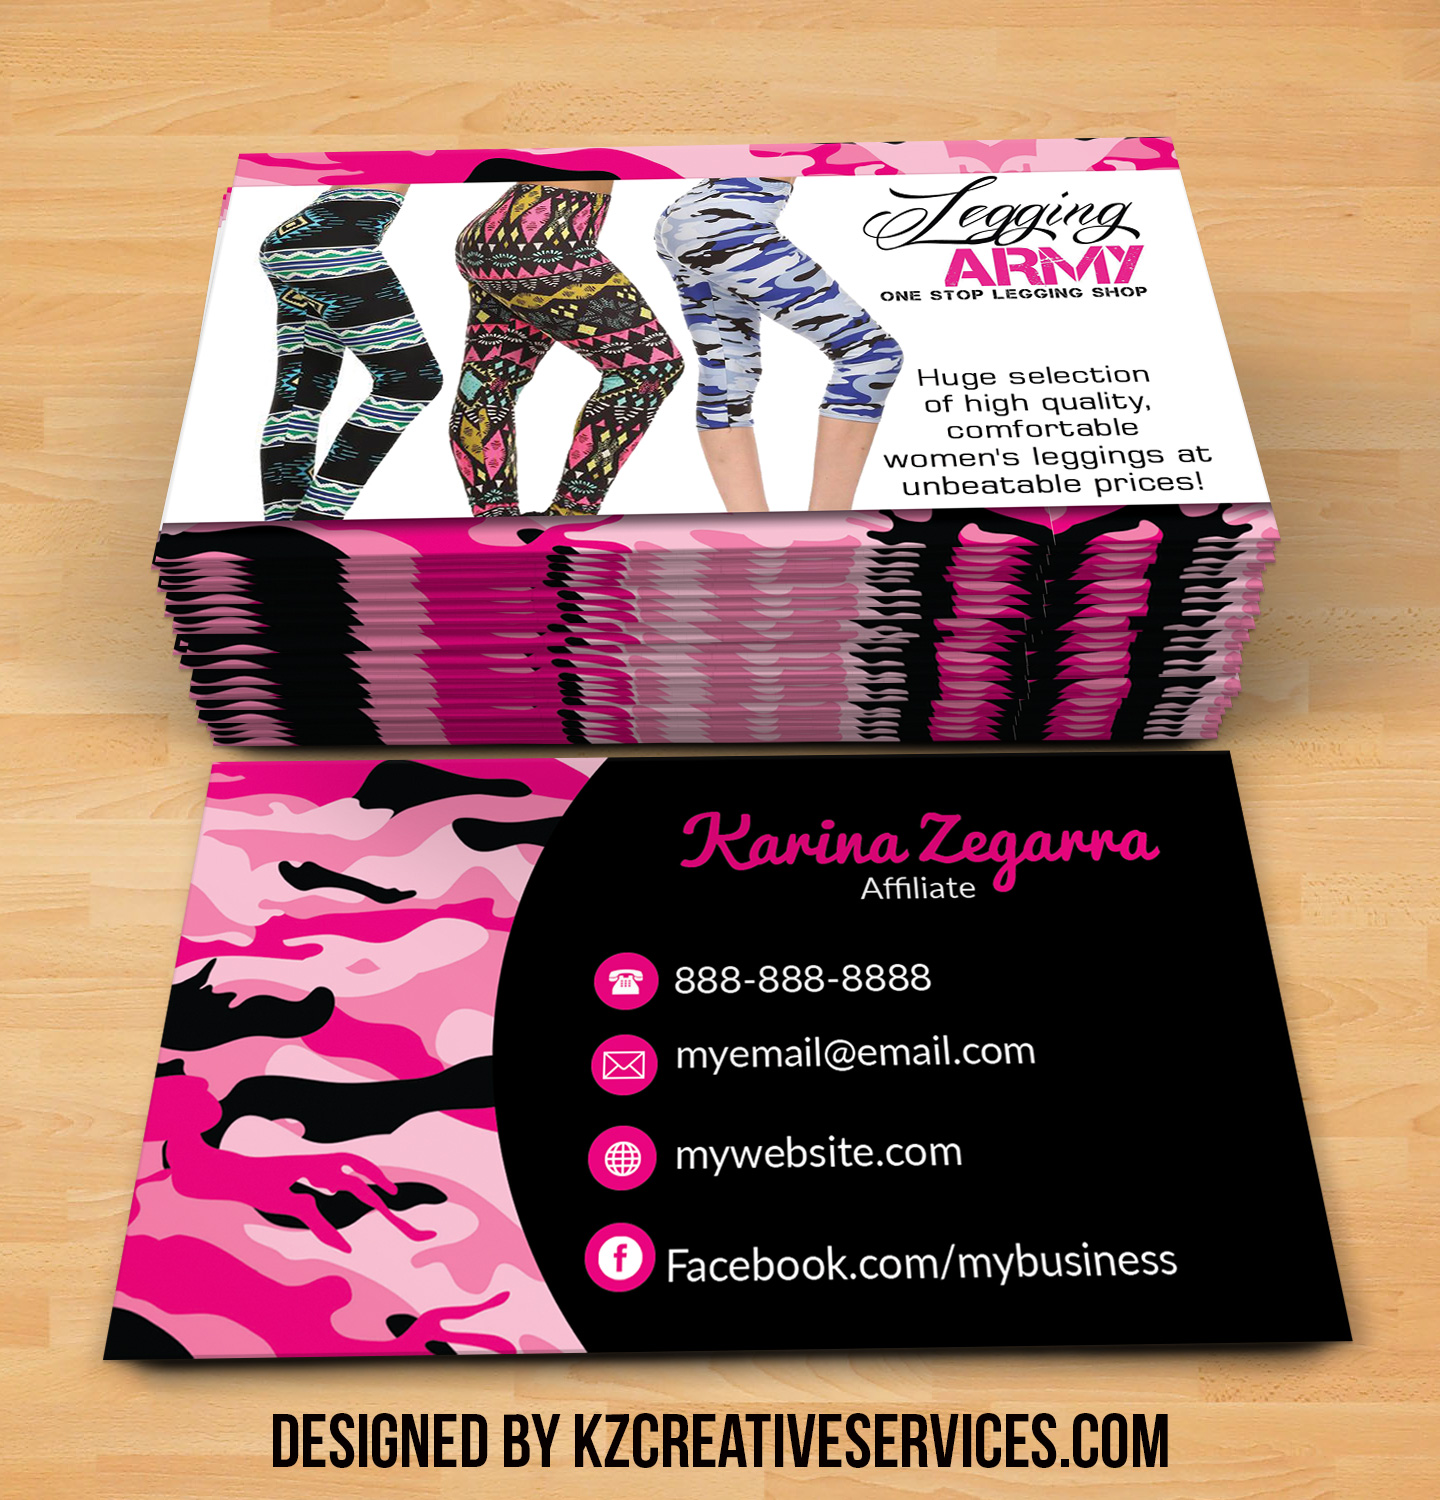 Legging Army Business Cards style 2 · KZ Creative Services · Online ...